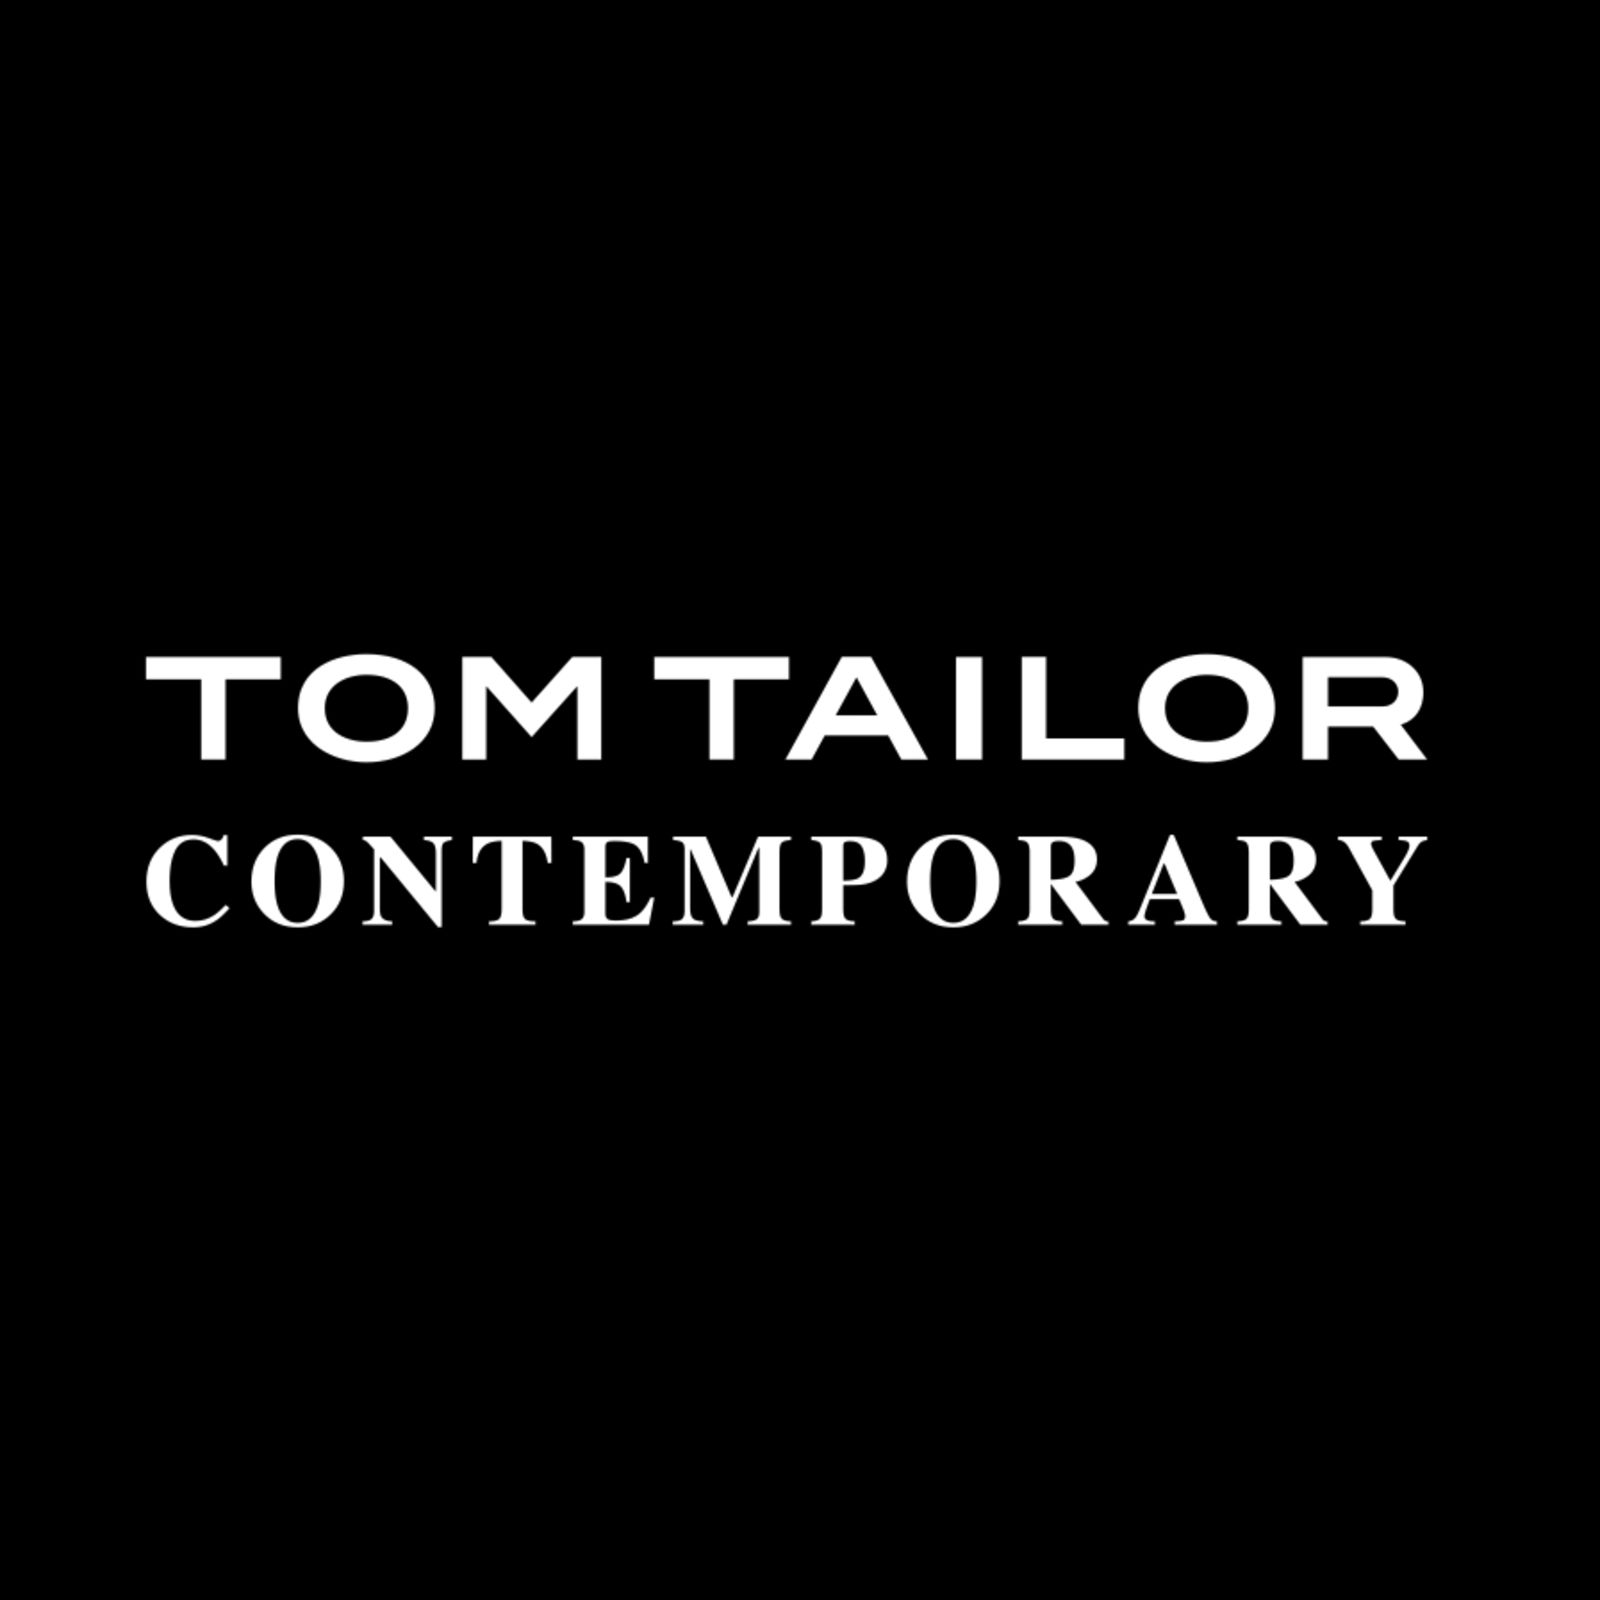 TOM TAILOR Contemporary (Bild 1)